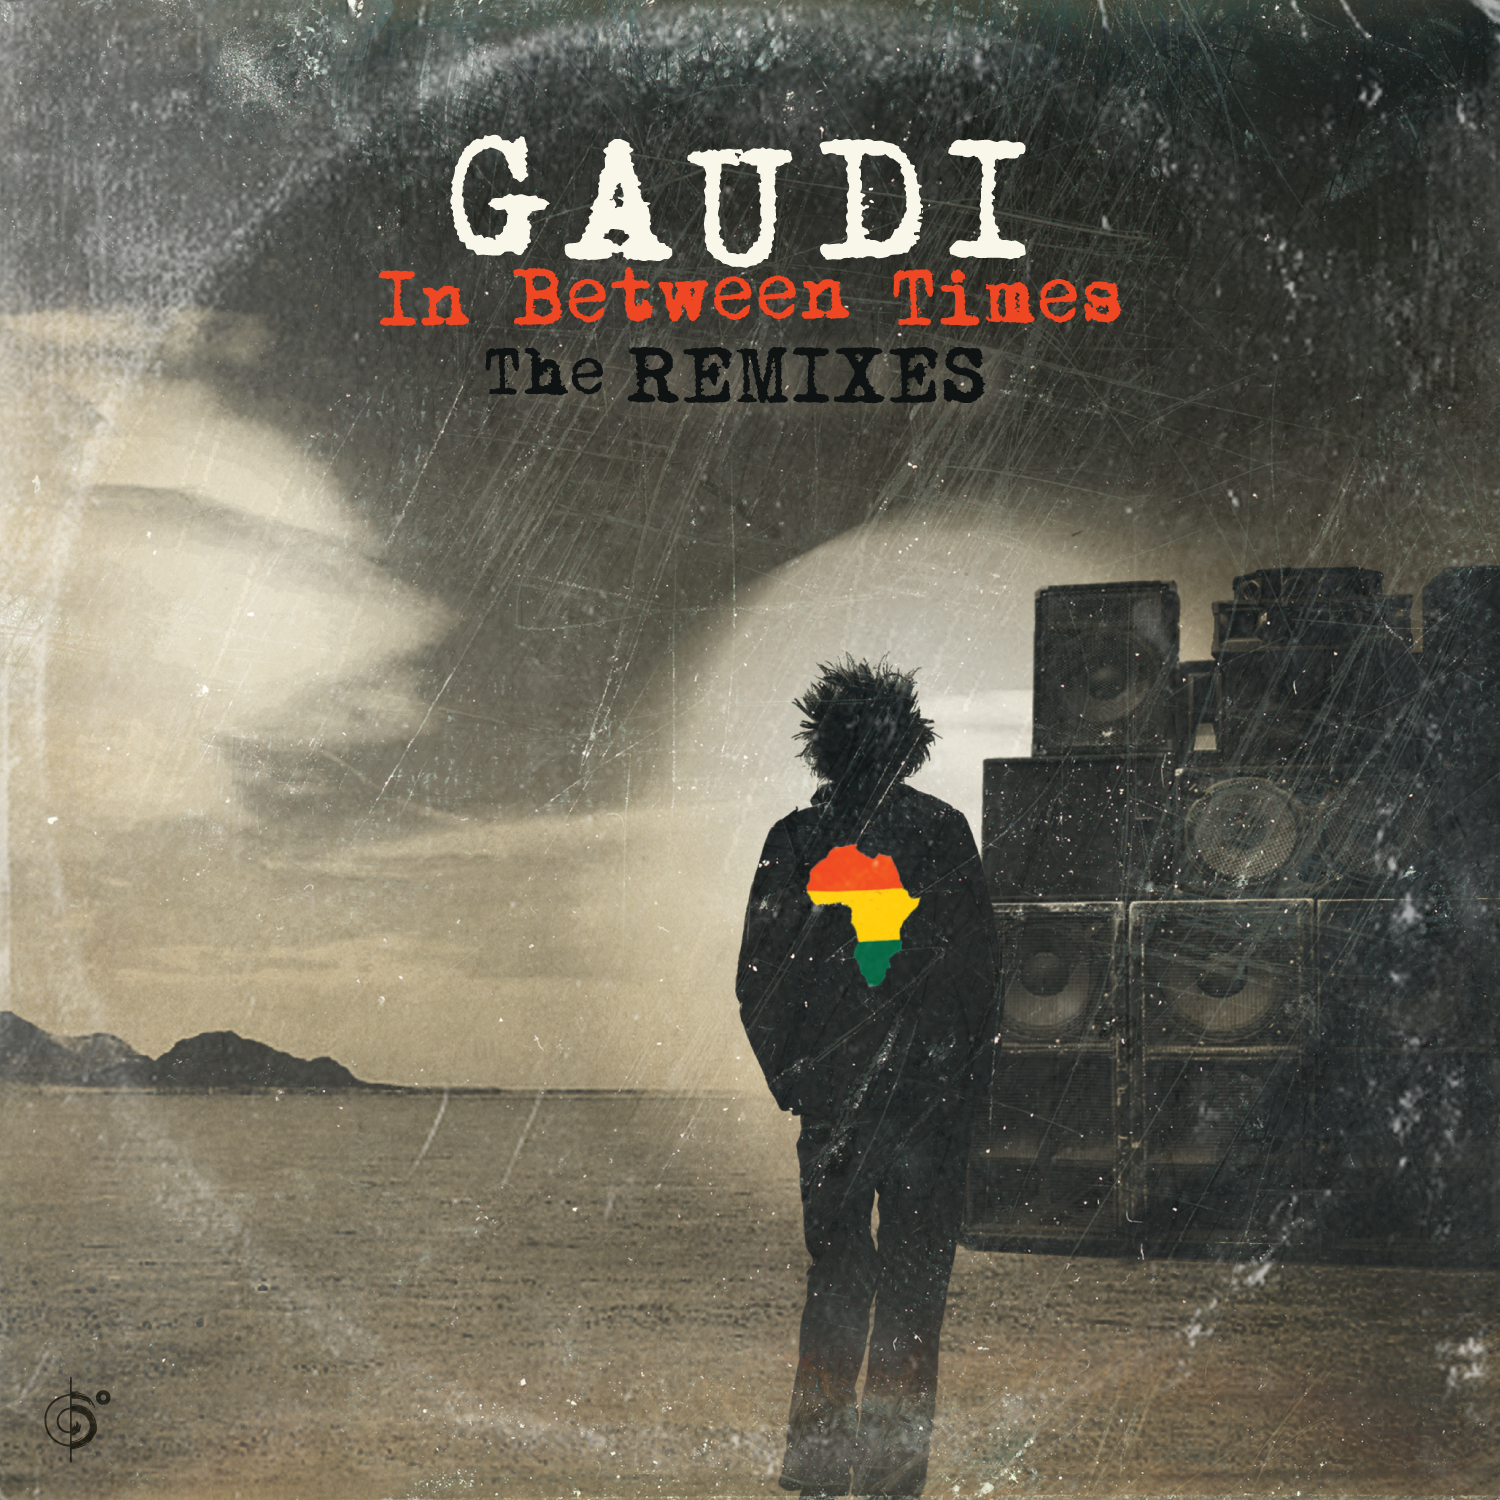 Gaudi – In Between Times (The Remixes)